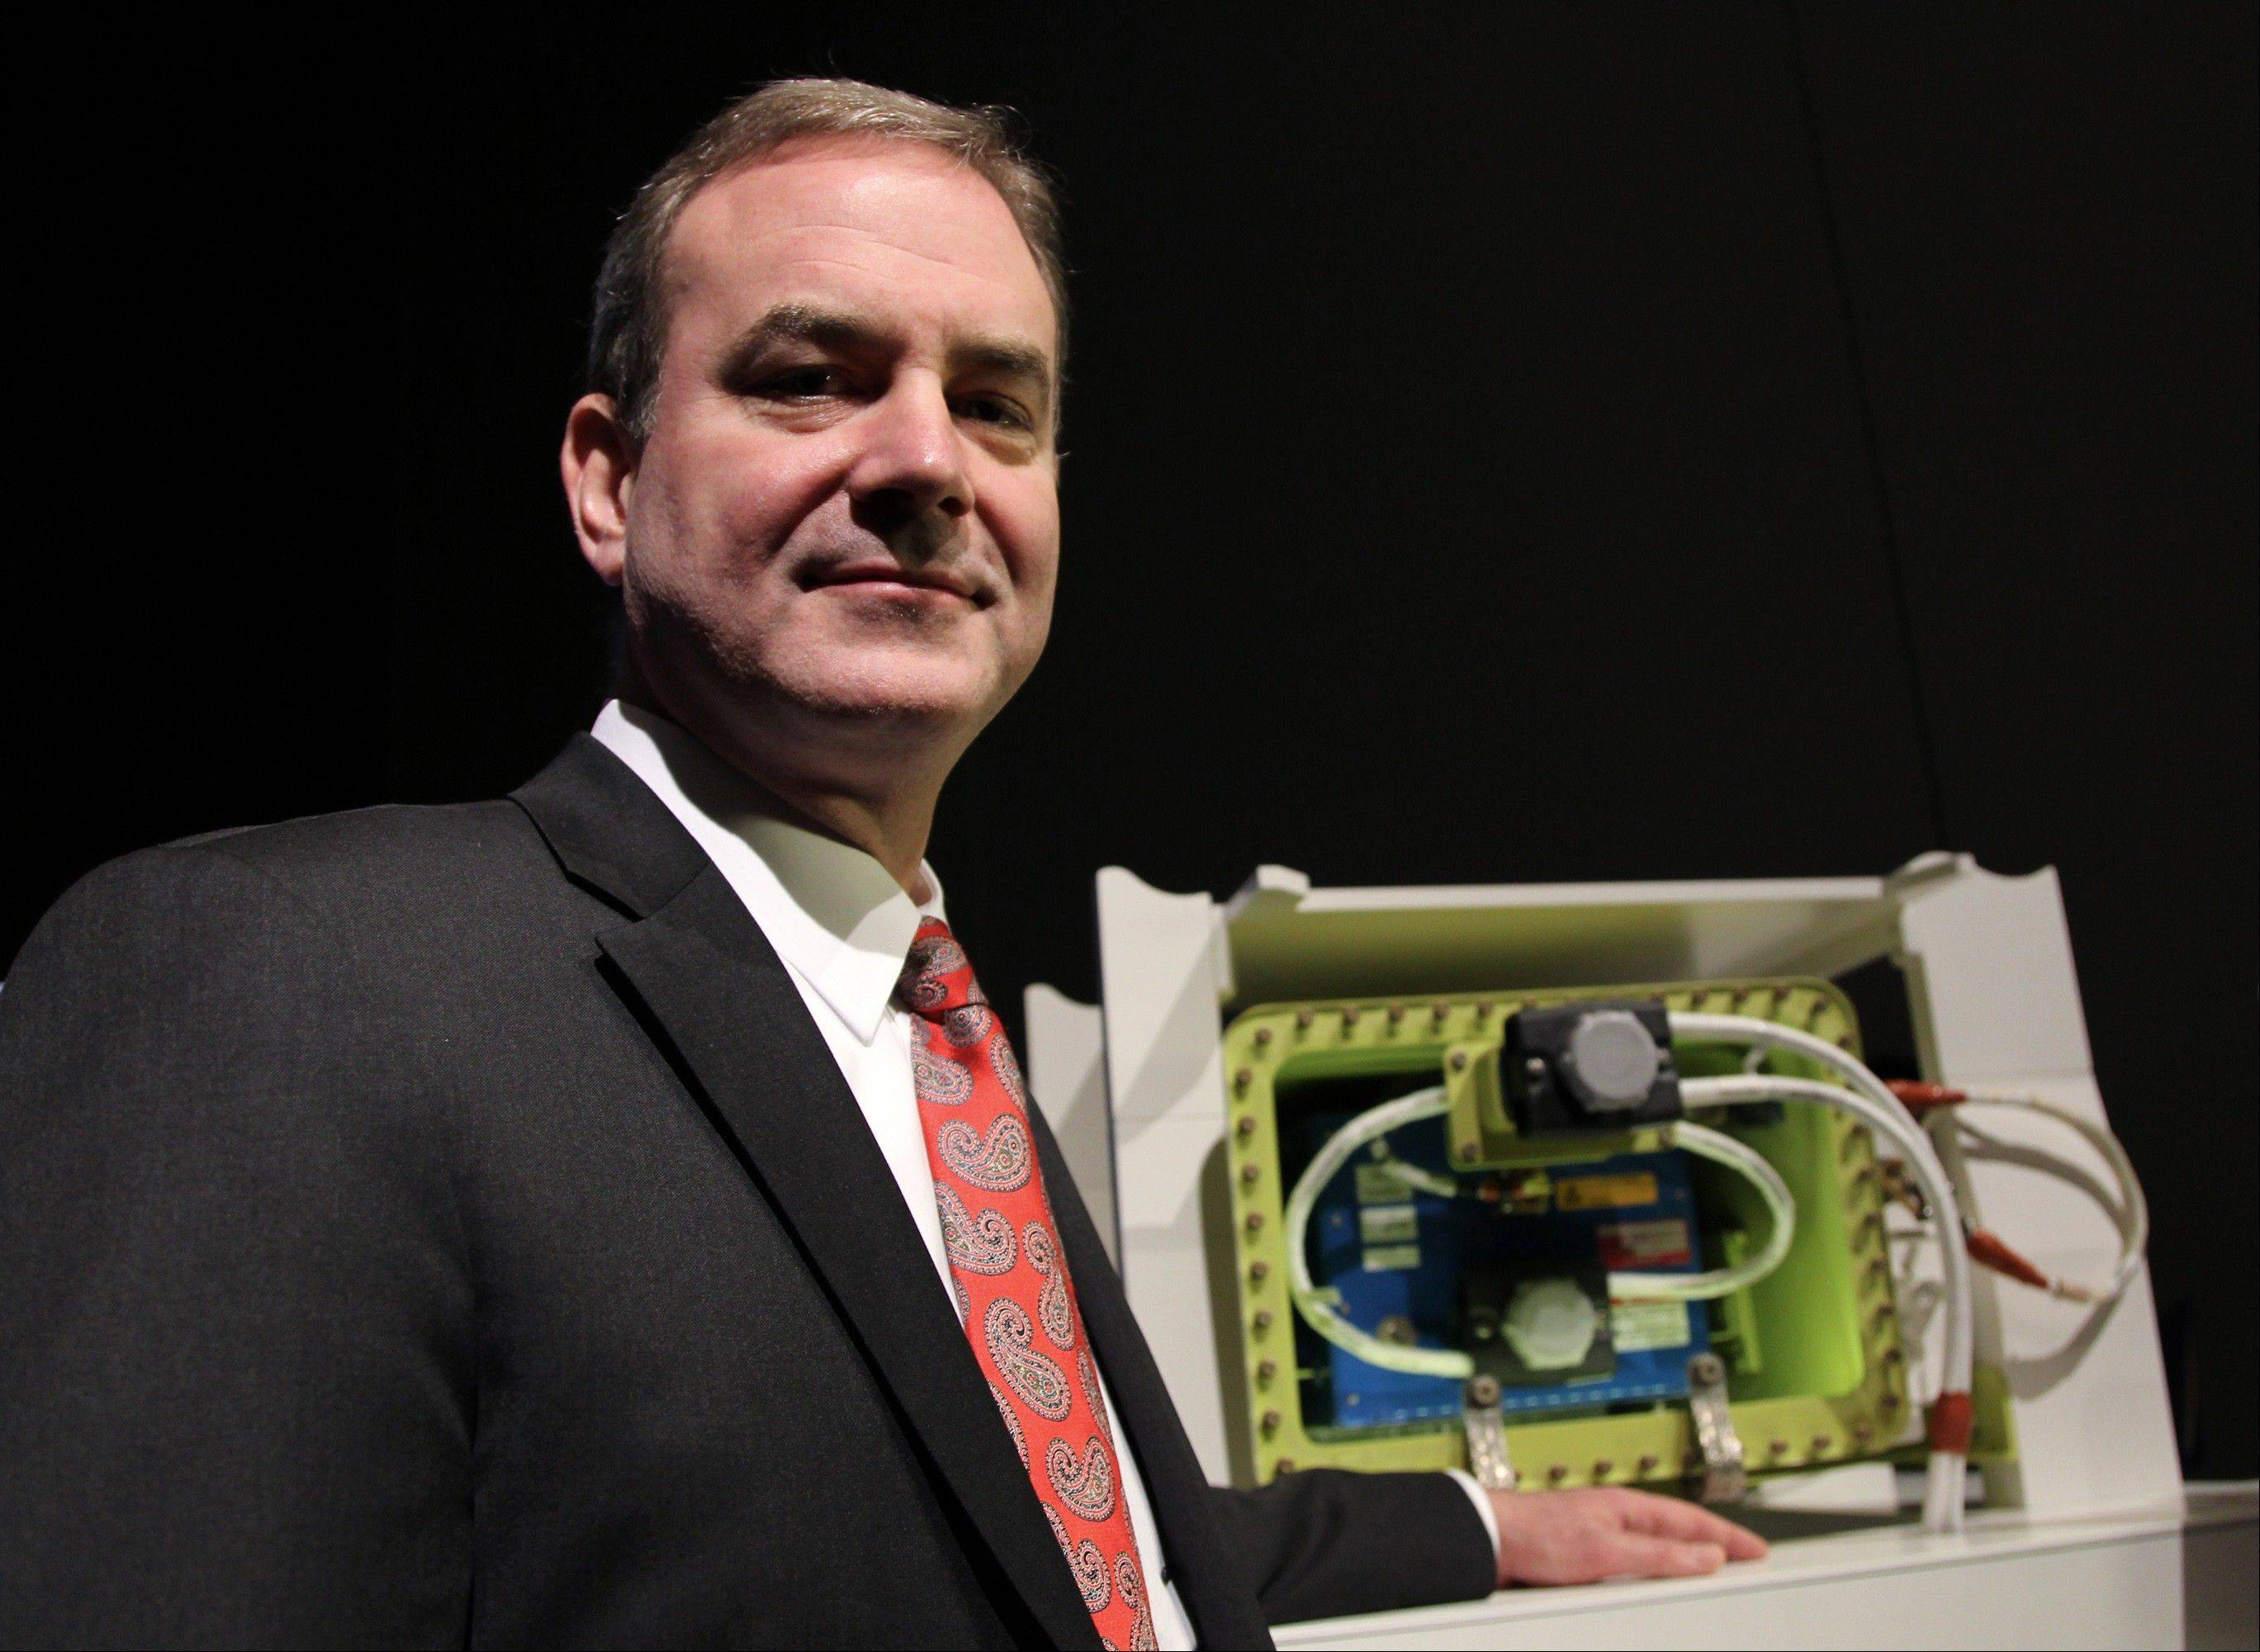 Associated PressMike Sinnett, vice president at Boeing Commercial Airplanes and chief project engineer of the 787 program, with a model of the newly redesigned battery for Boeing Co.'s 787 Dreamliner during a news conference in Tokyo, Japan.